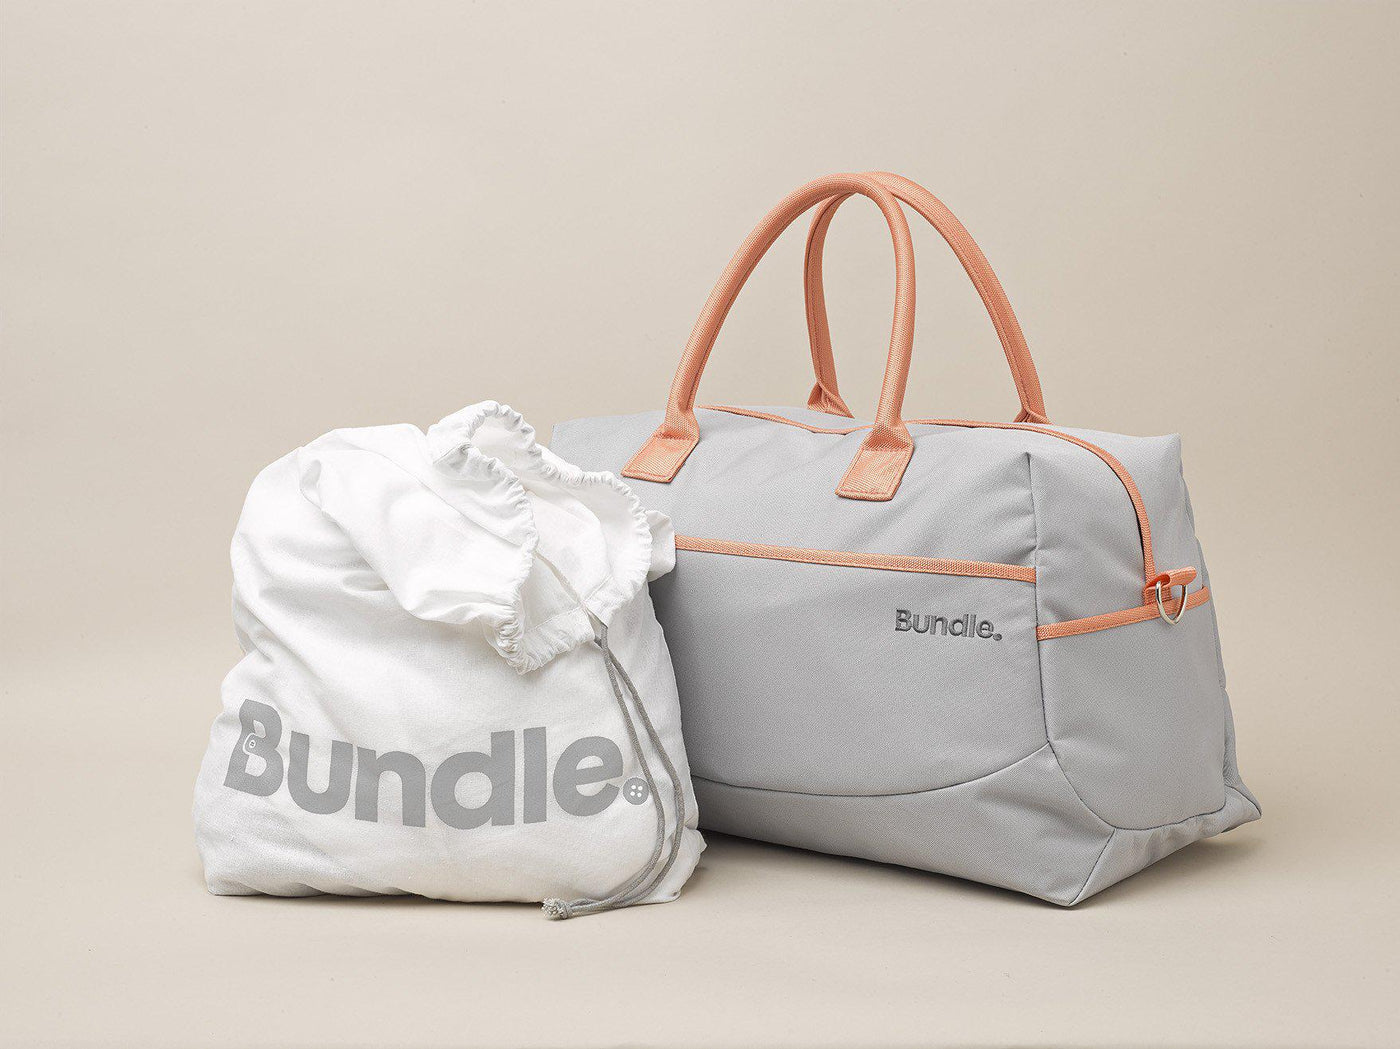 Bundle Hospital Bag